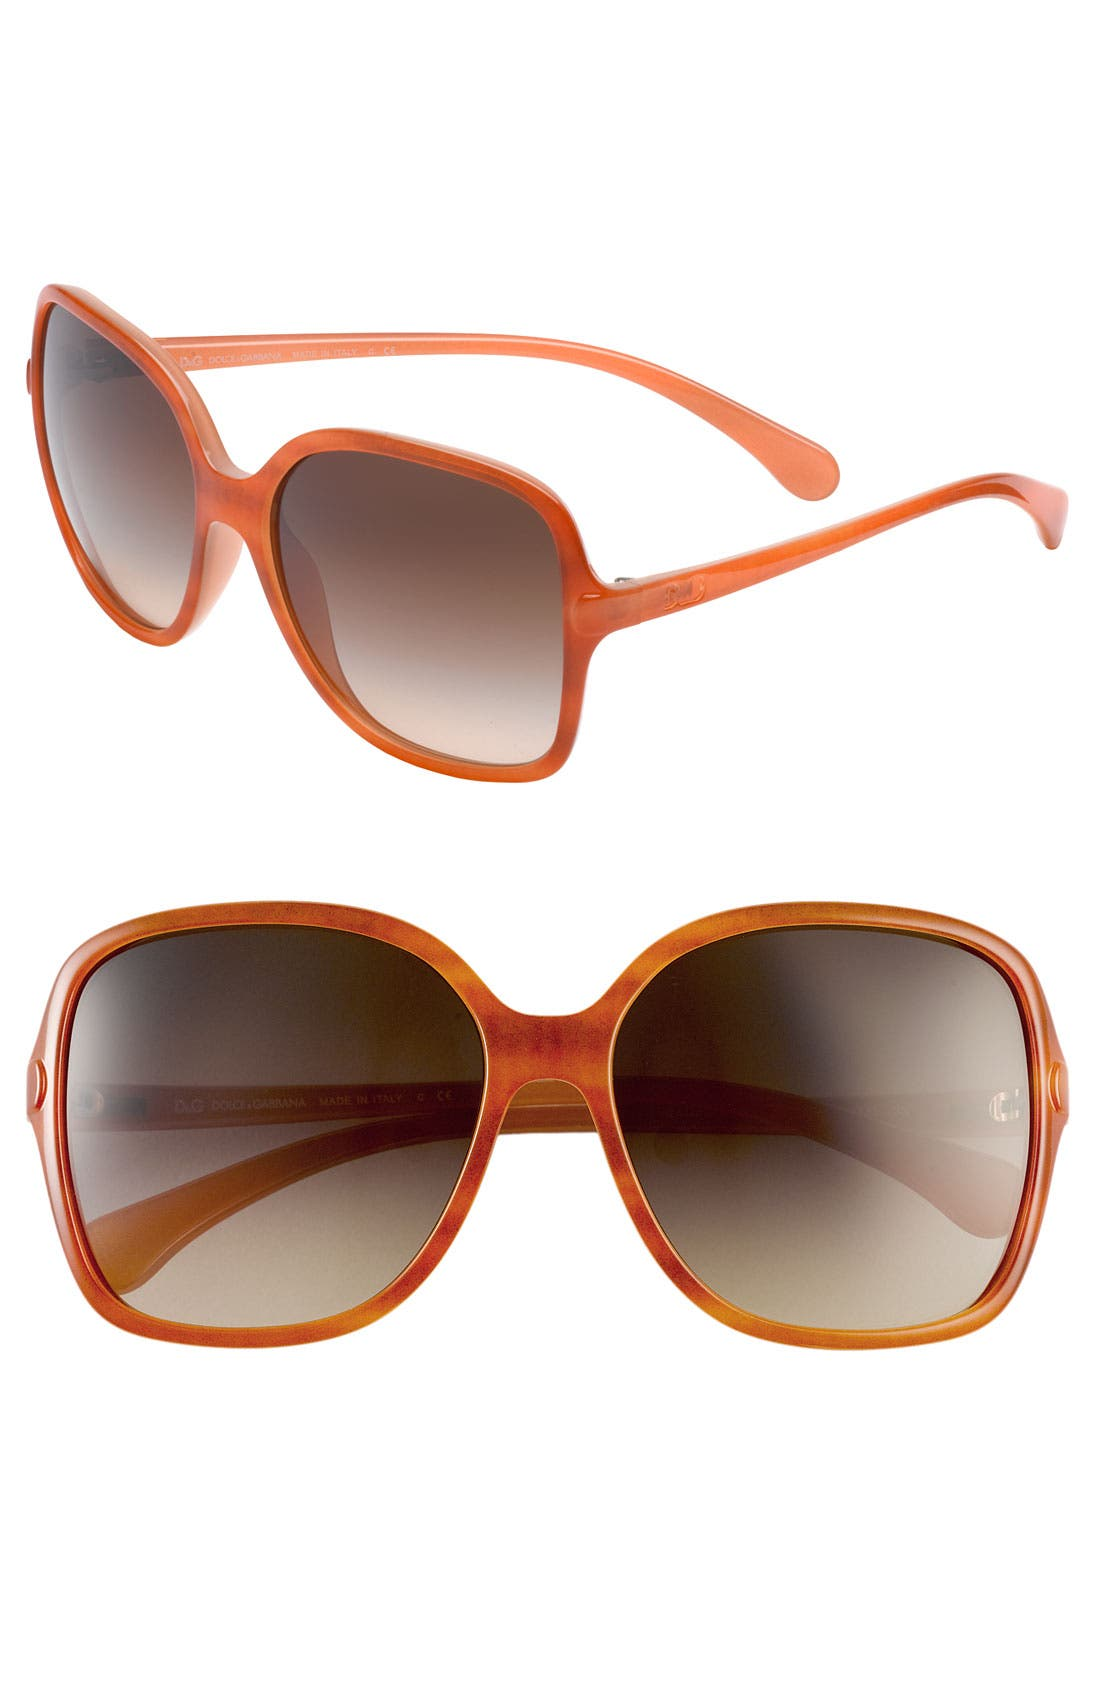 Alternate Image 1 Selected - D&G 'Large Glam' Square Sunglasses